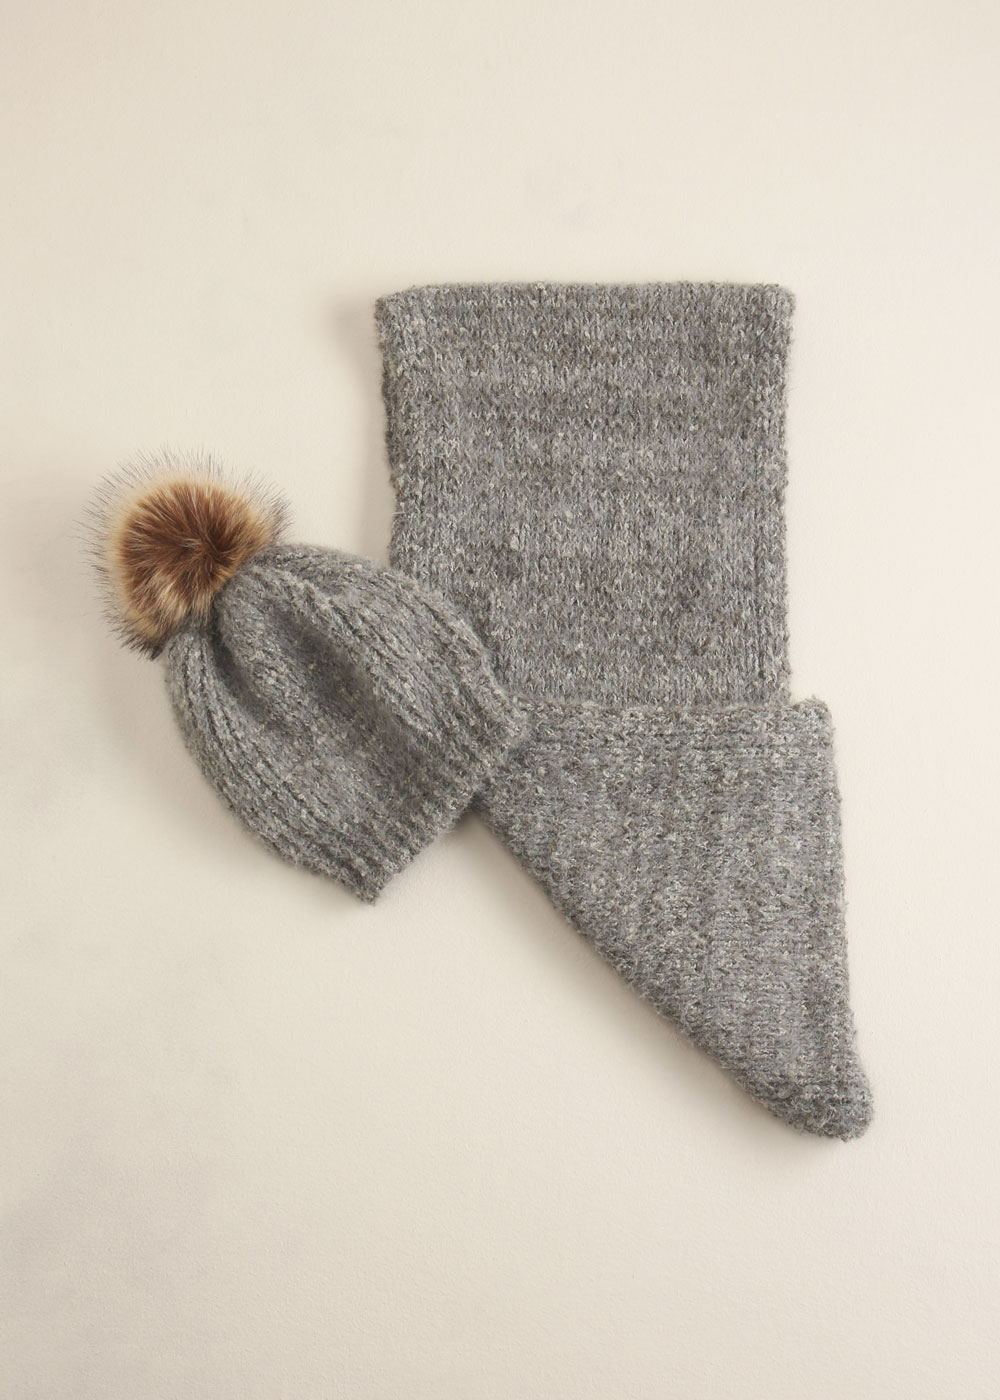 Hat & Scarf - $68